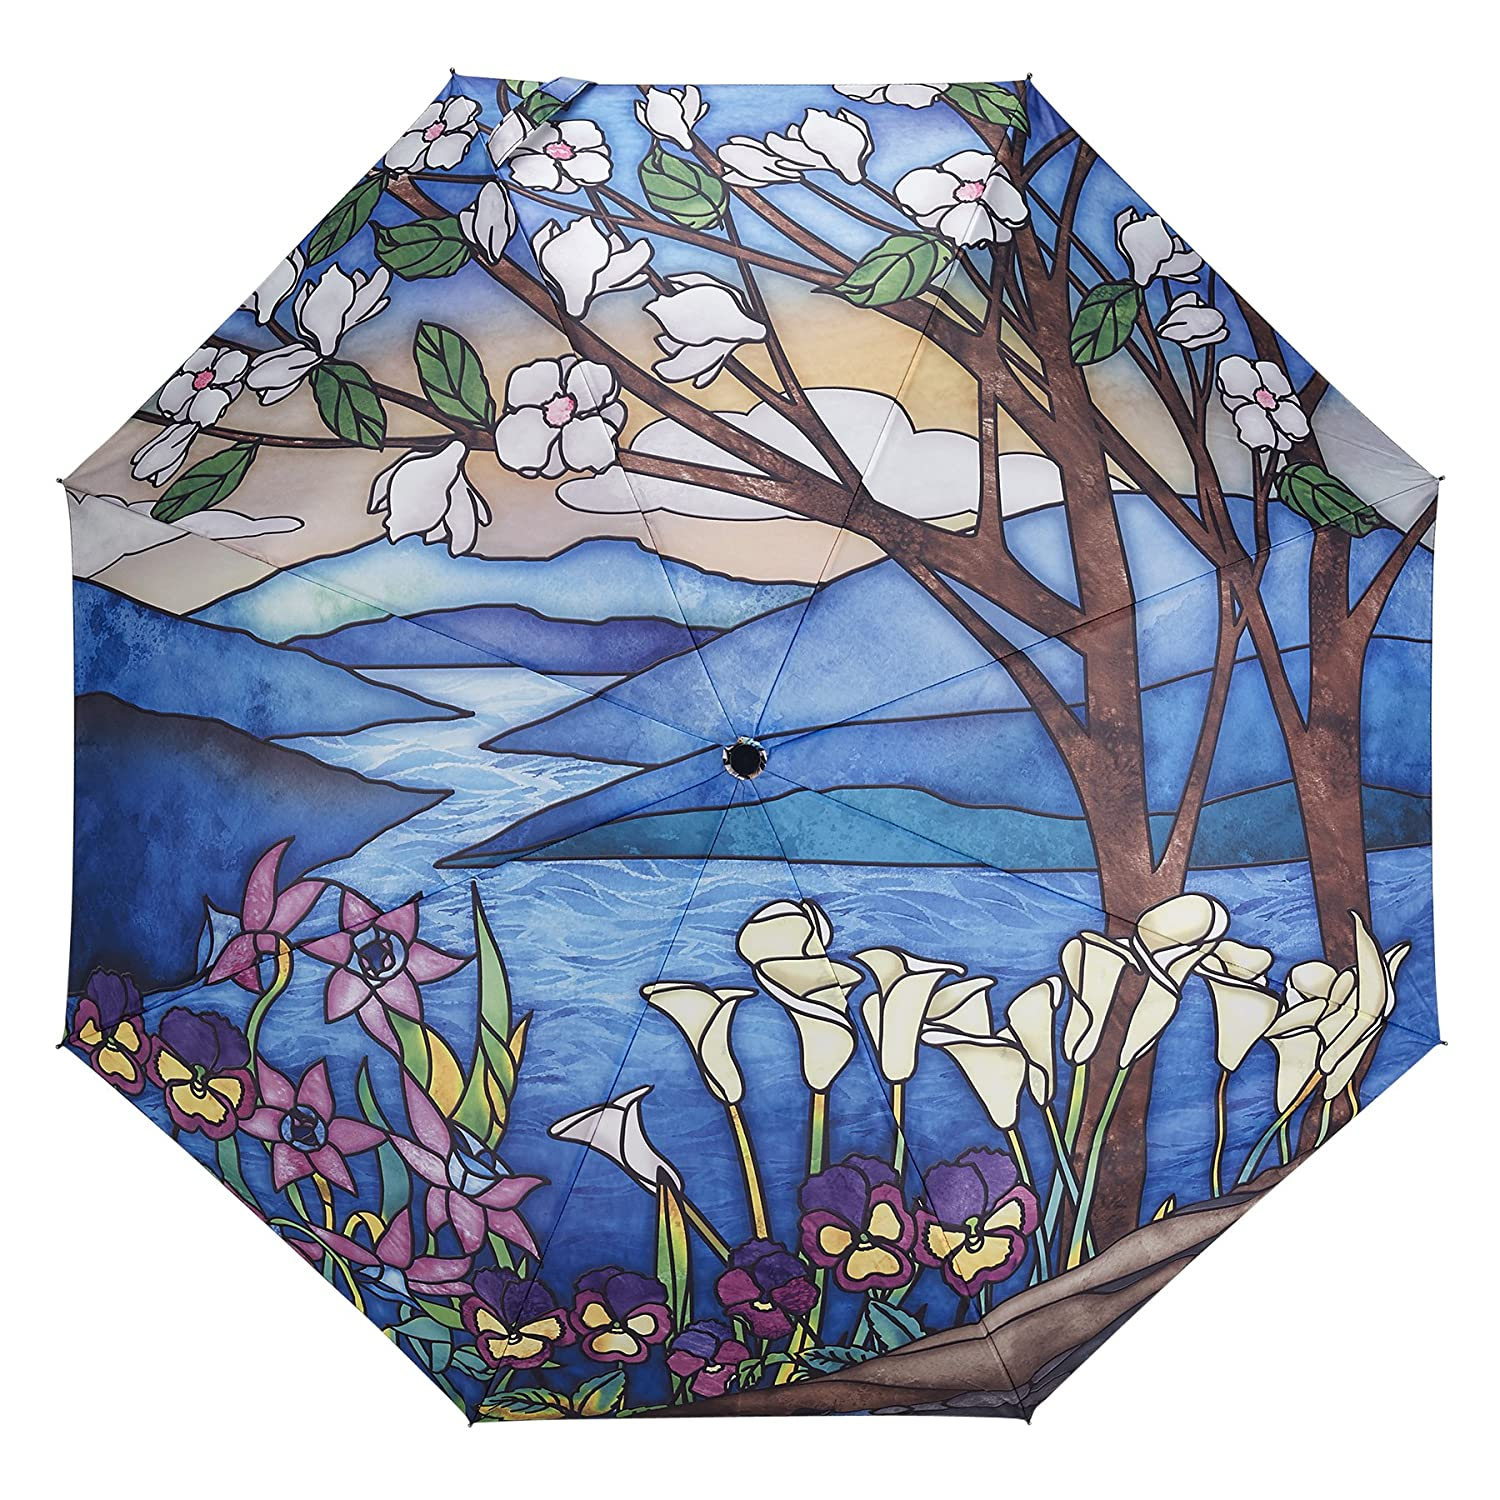 Galleria Stained Glass Landscape Auto-Open/Close Extra Large Portable Rain Folding Umbrella for Women, 48-inch canopy, compacts to 12' fitting in most totes, unbreakable fiberglass ribs compacts to 12 fitting in most totes 33049